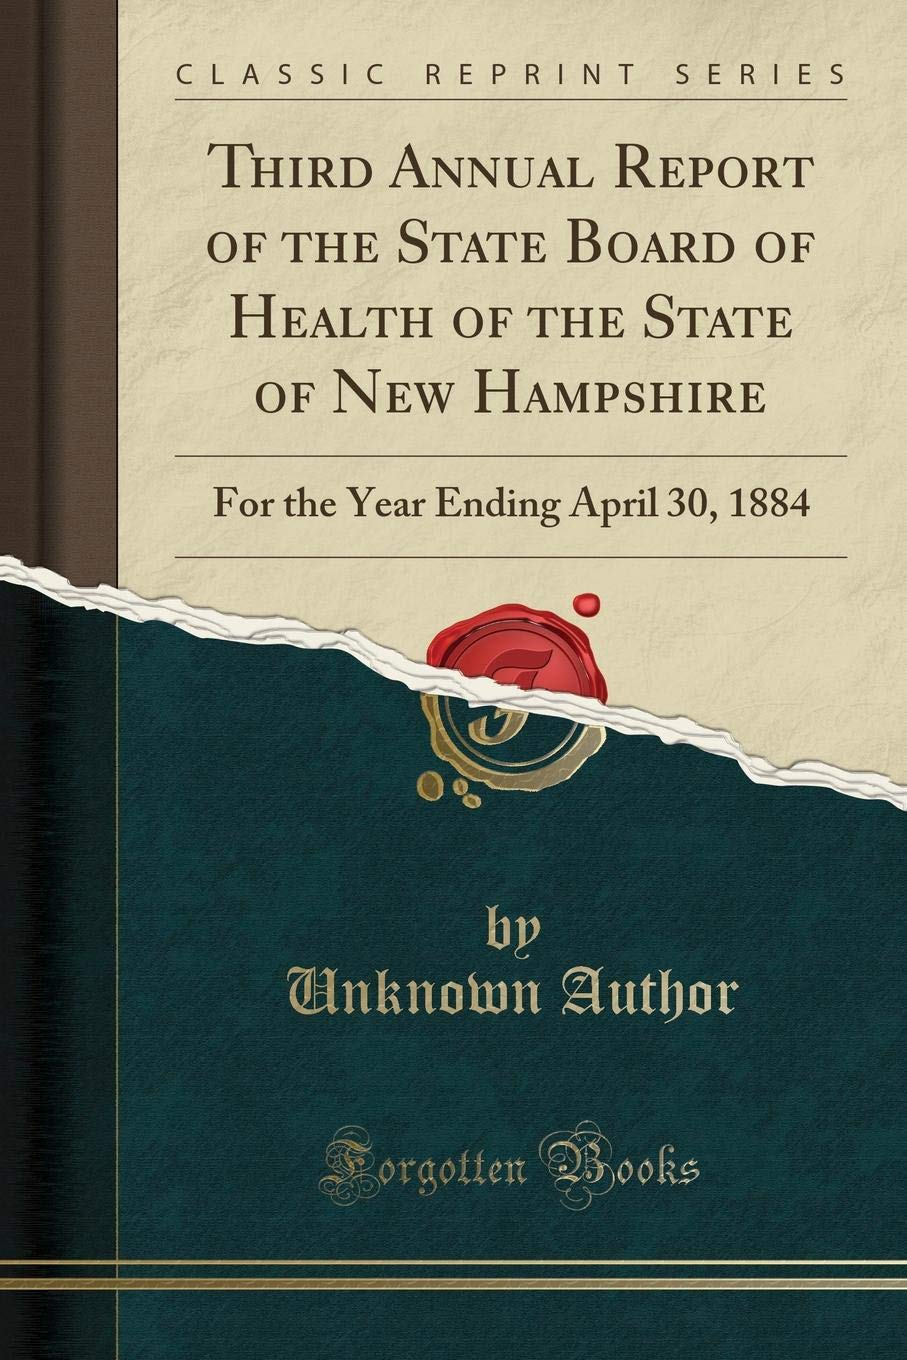 Download Third Annual Report of the State Board of Health of the State of New Hampshire: For the Year Ending April 30, 1884 (Classic Reprint) ebook